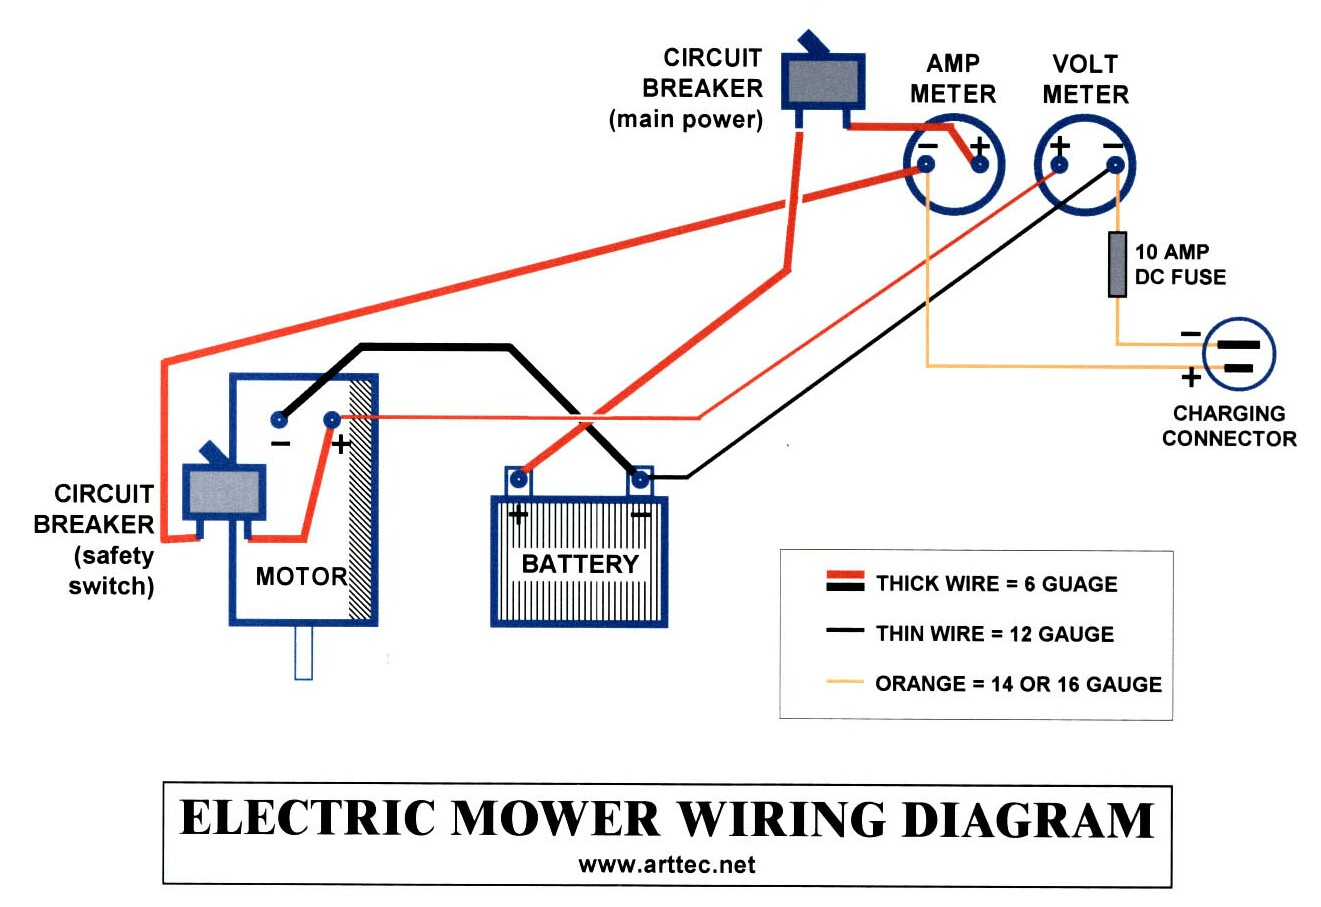 hight resolution of solar mower electrical wiringwire diagram for amp meter 17